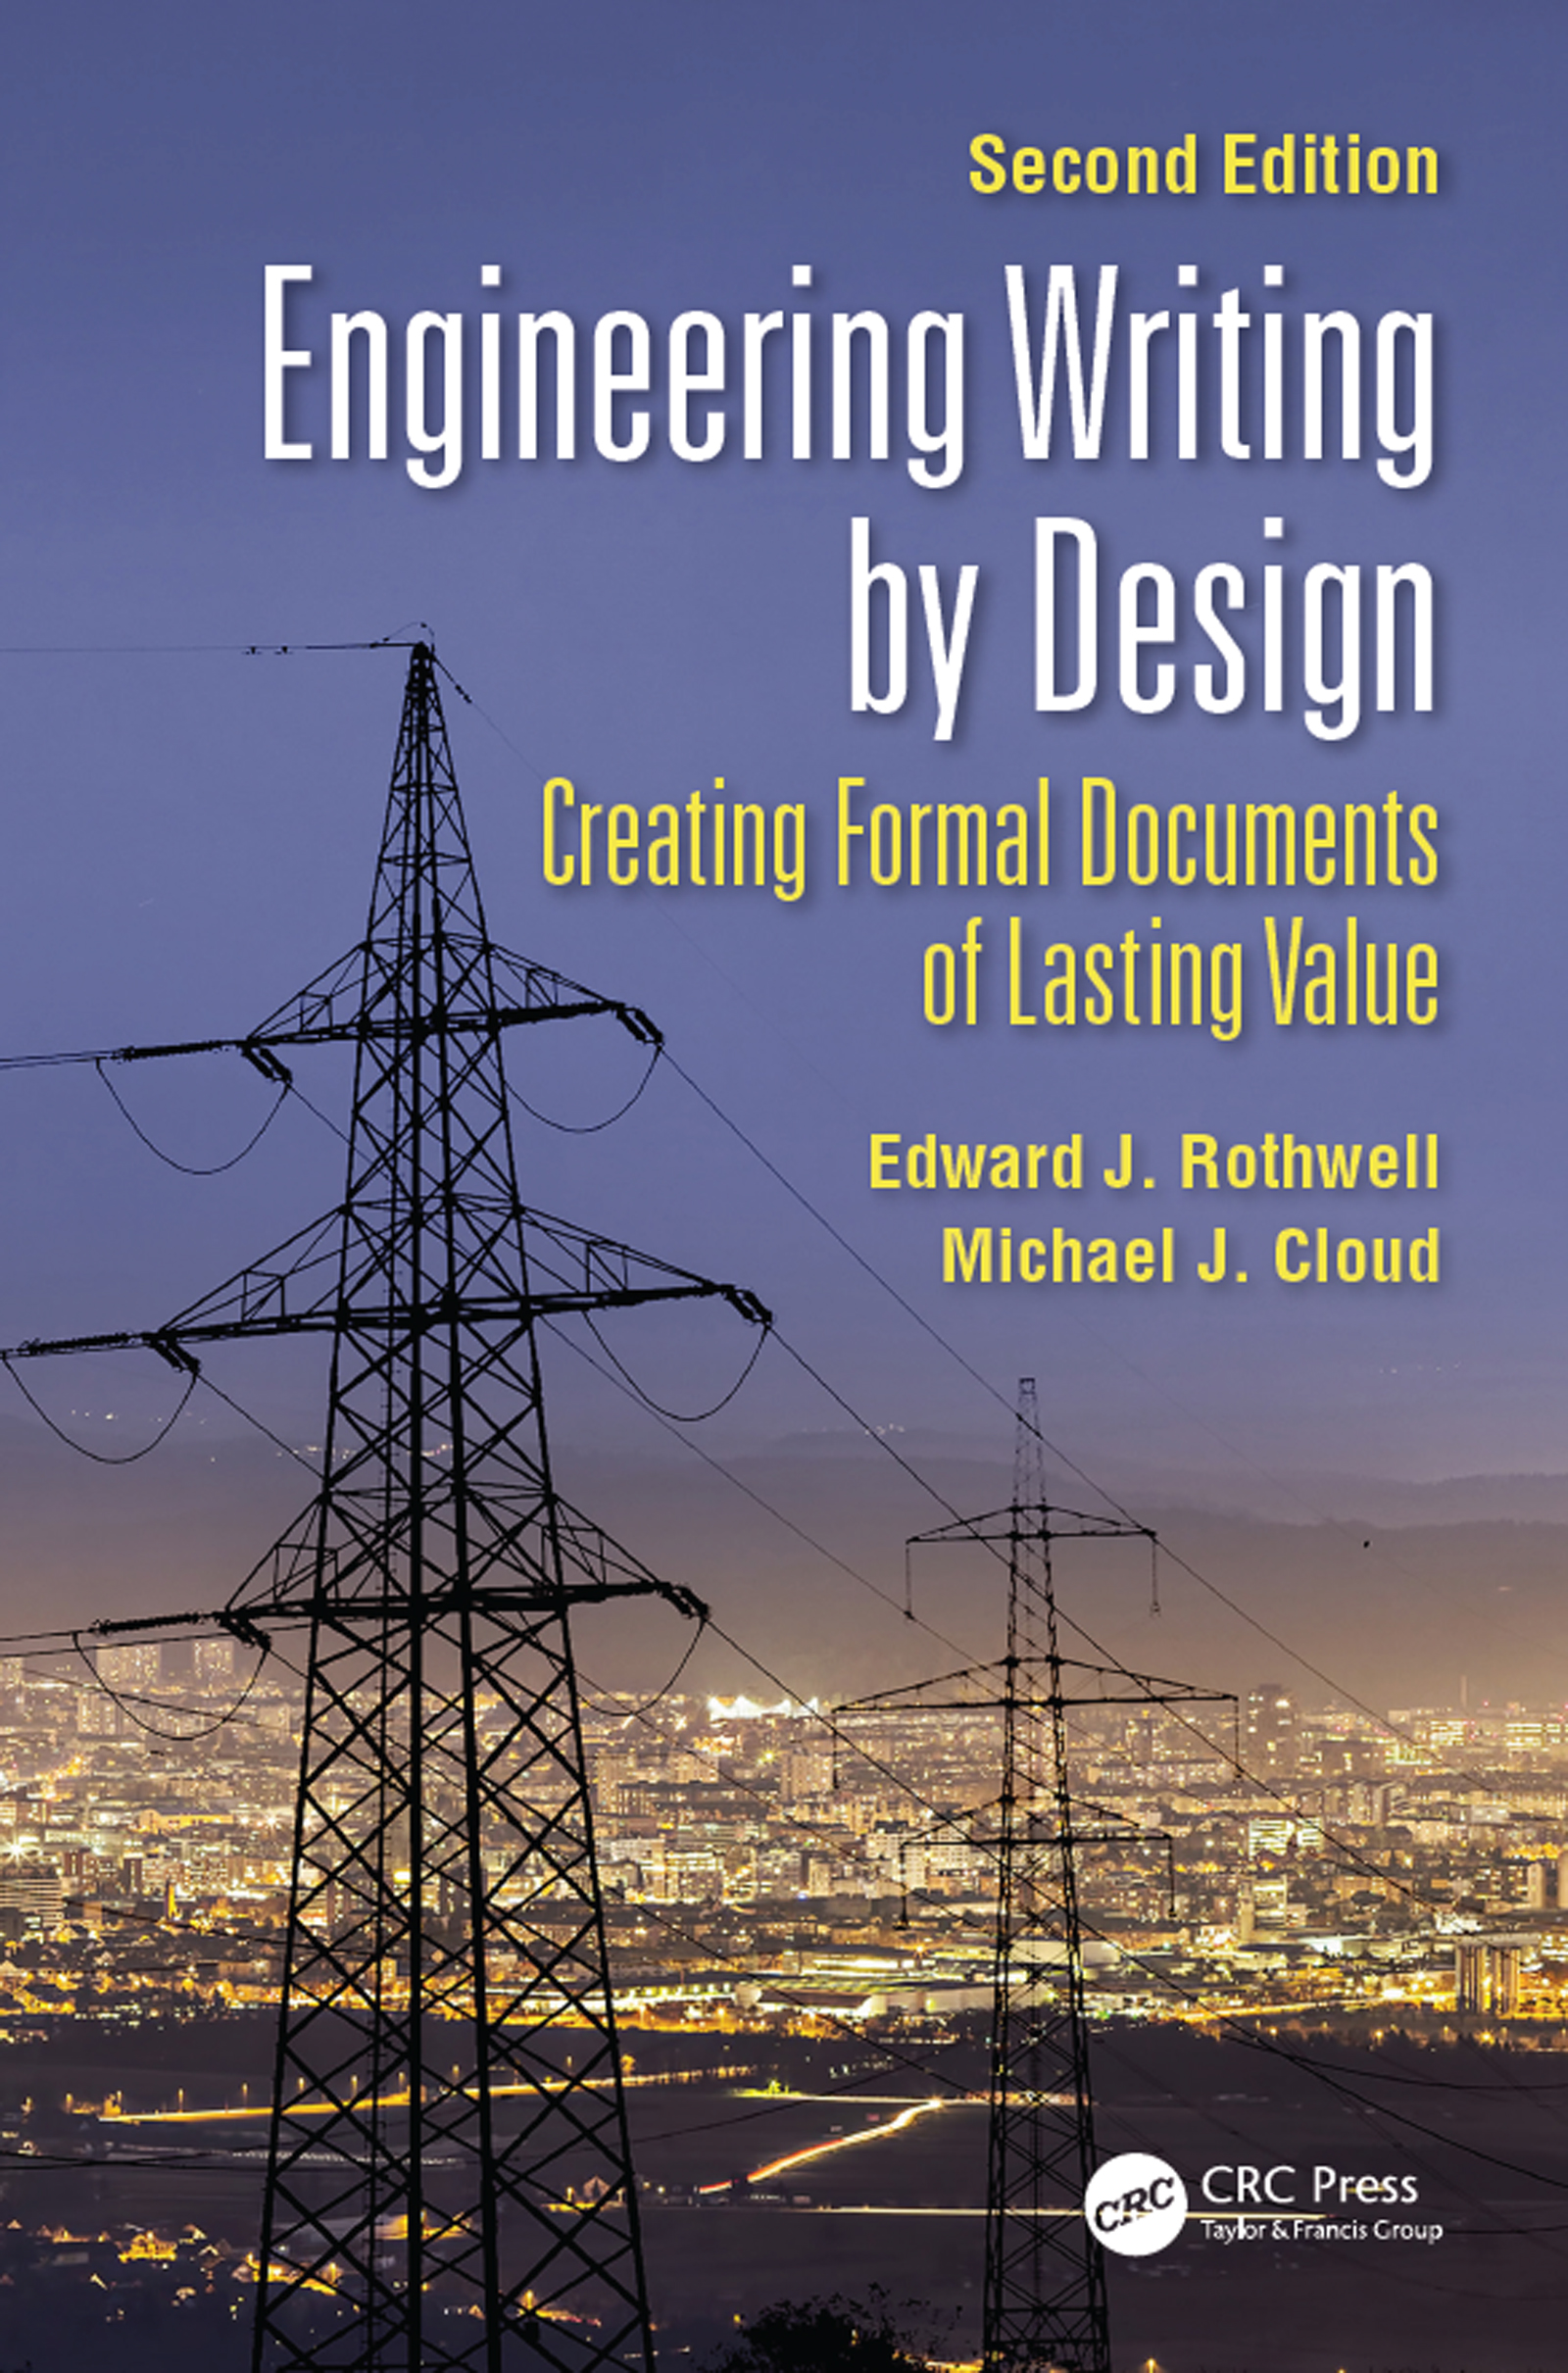 Engineering Writing by Design: Creating Formal Documents of Lasting Value, Second Edition book cover